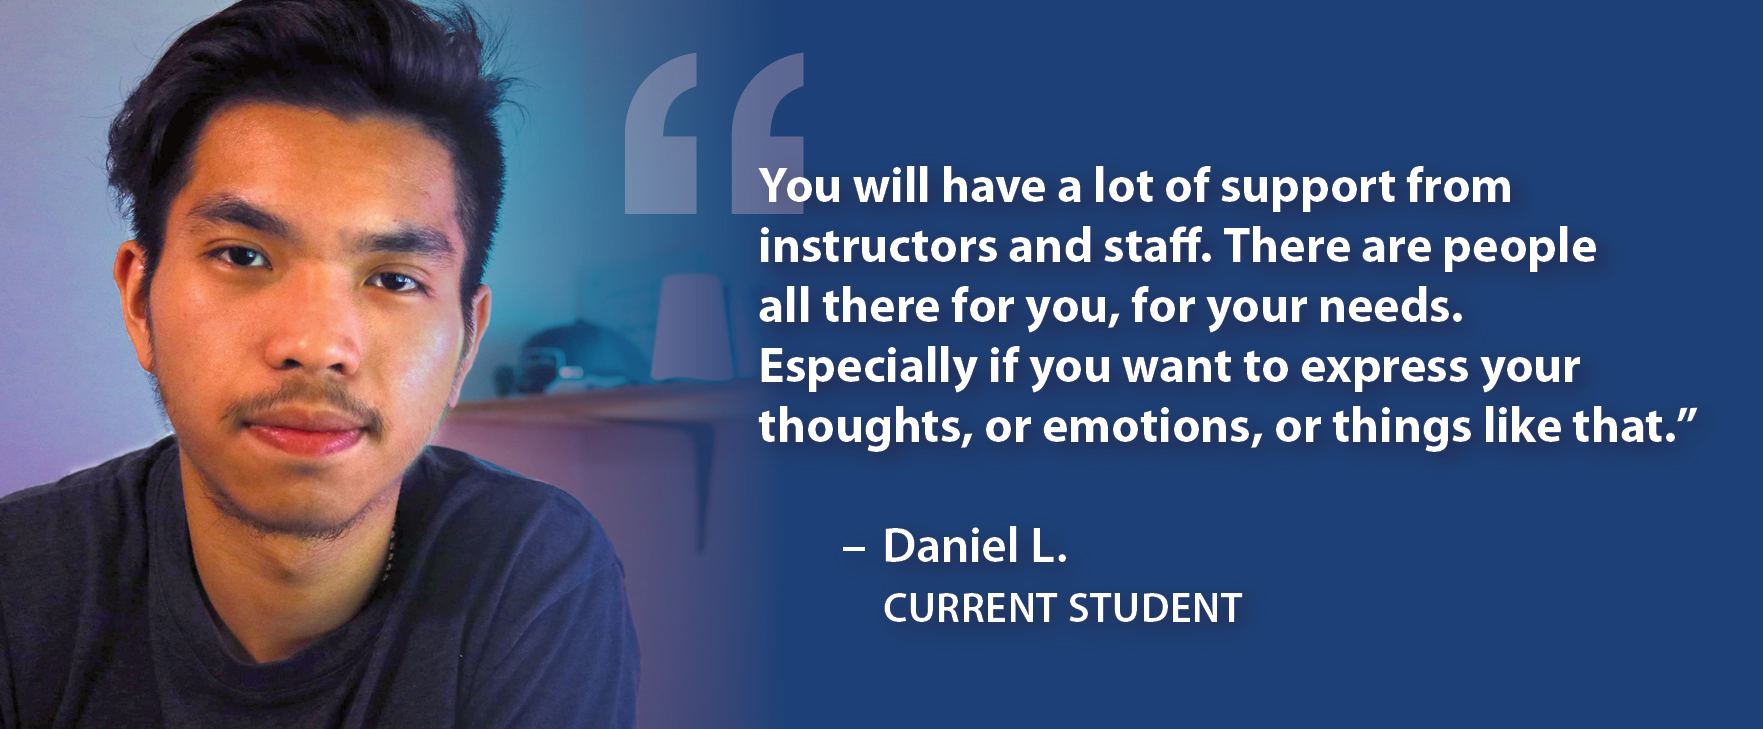 """You will have a lot of support from instructors and staff. There are people all there for you, for your needs. Especially if you want to express your thoughts, or emotions, or things like that."""" Daniel L. Current Student"""